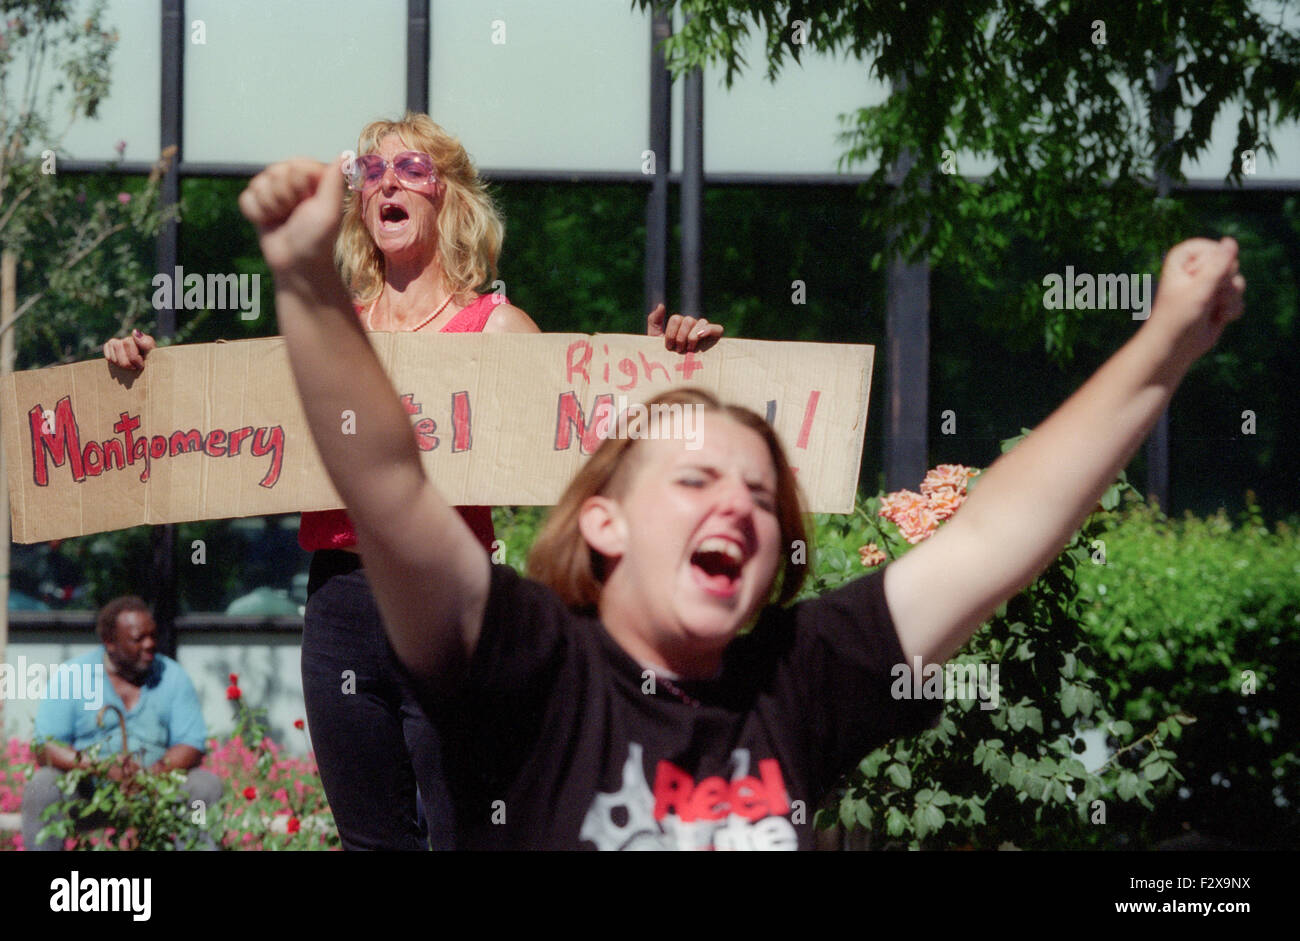 two women shouting, one is holding sign reading, Montgomery Hotel Now!  San Jose homeless, low income residents, - Stock Image